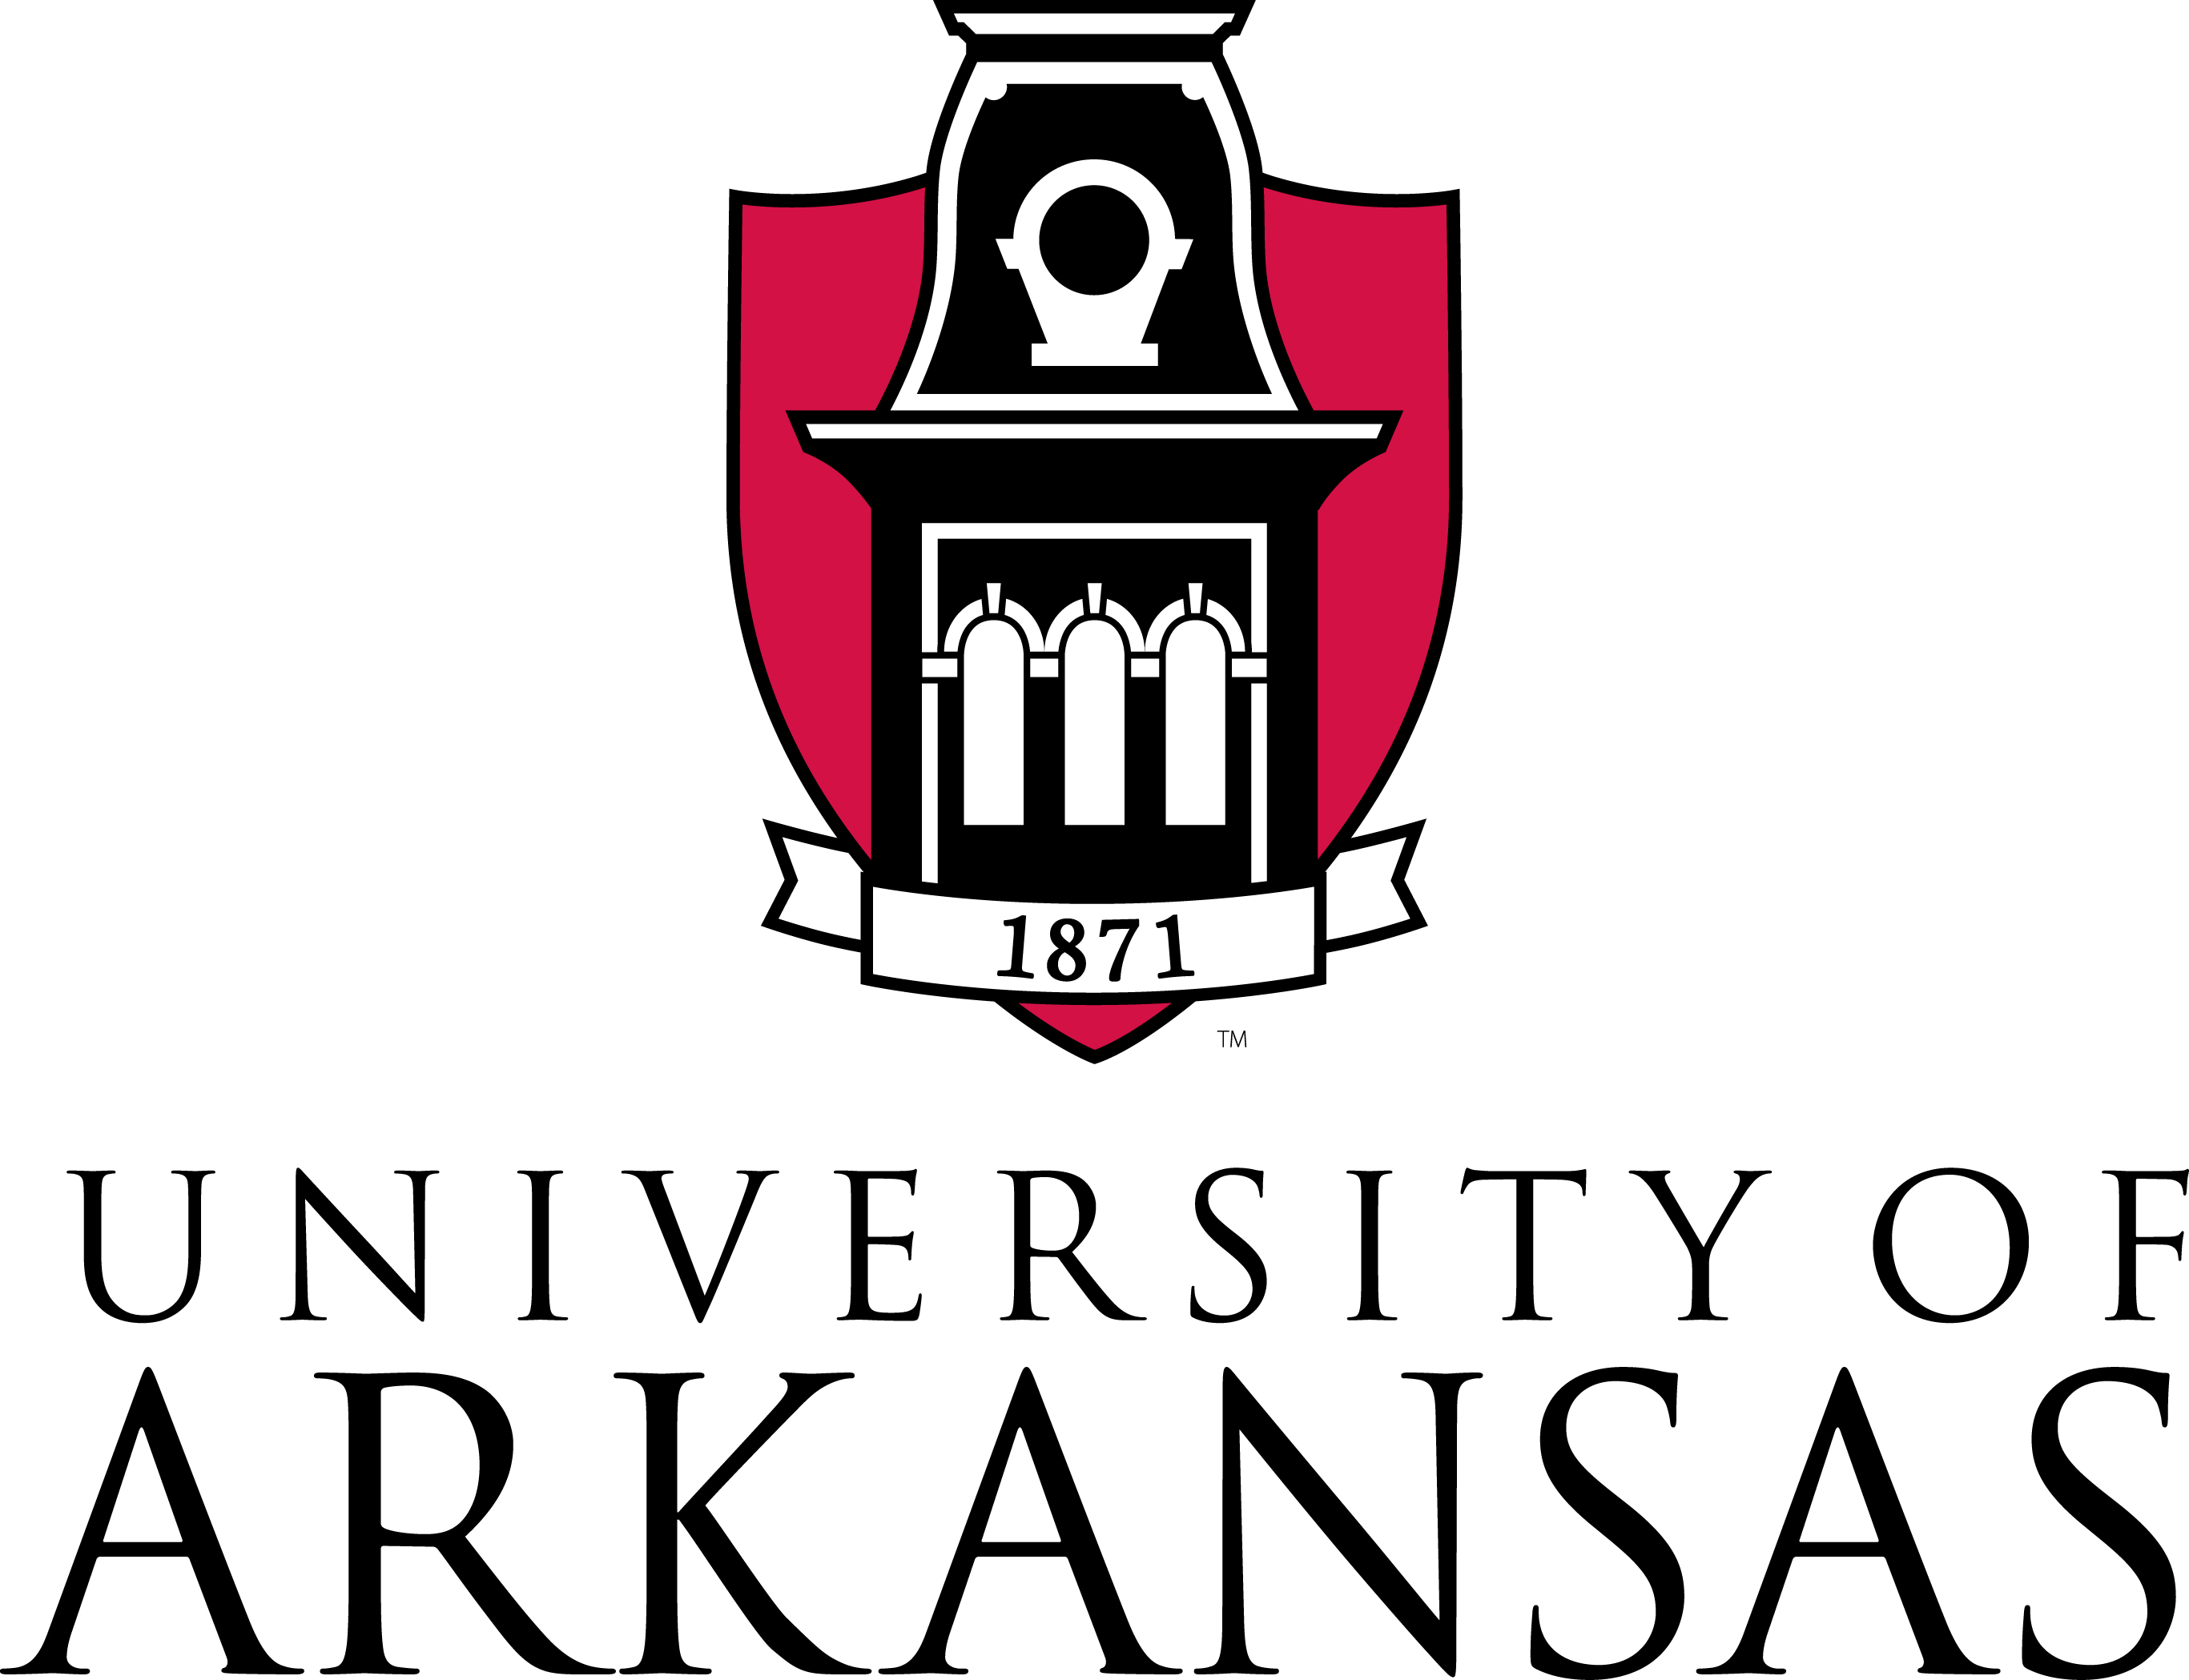 What the University of Arkansas controversy can teach us about archival permission practices